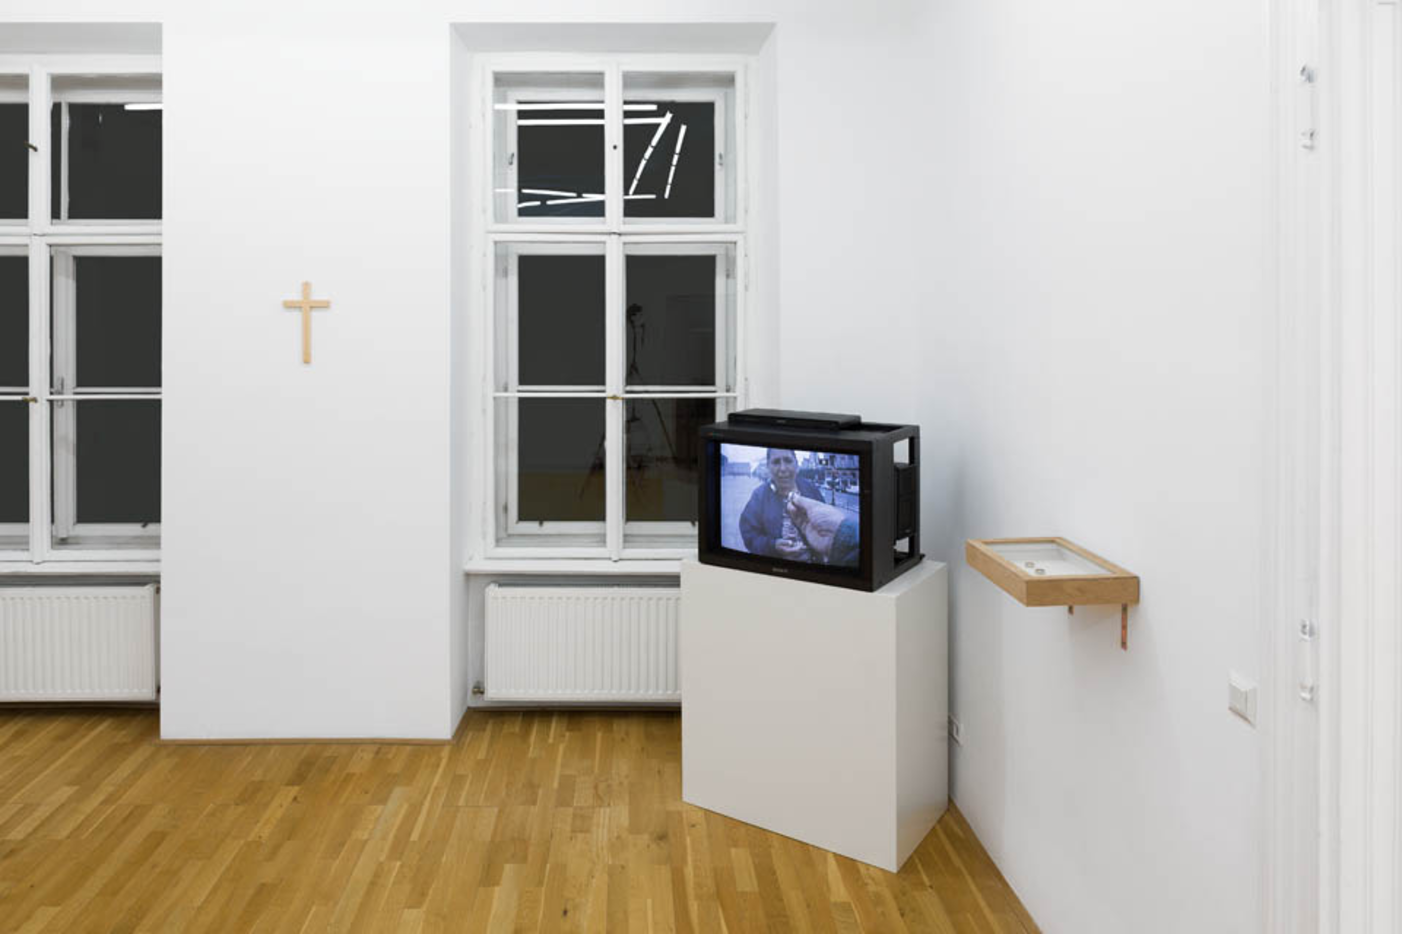 Exhibition View, Galerie Andreas Huber, Detective, curated by_Adam Carr, 2012, Photo: Georg Petermichl